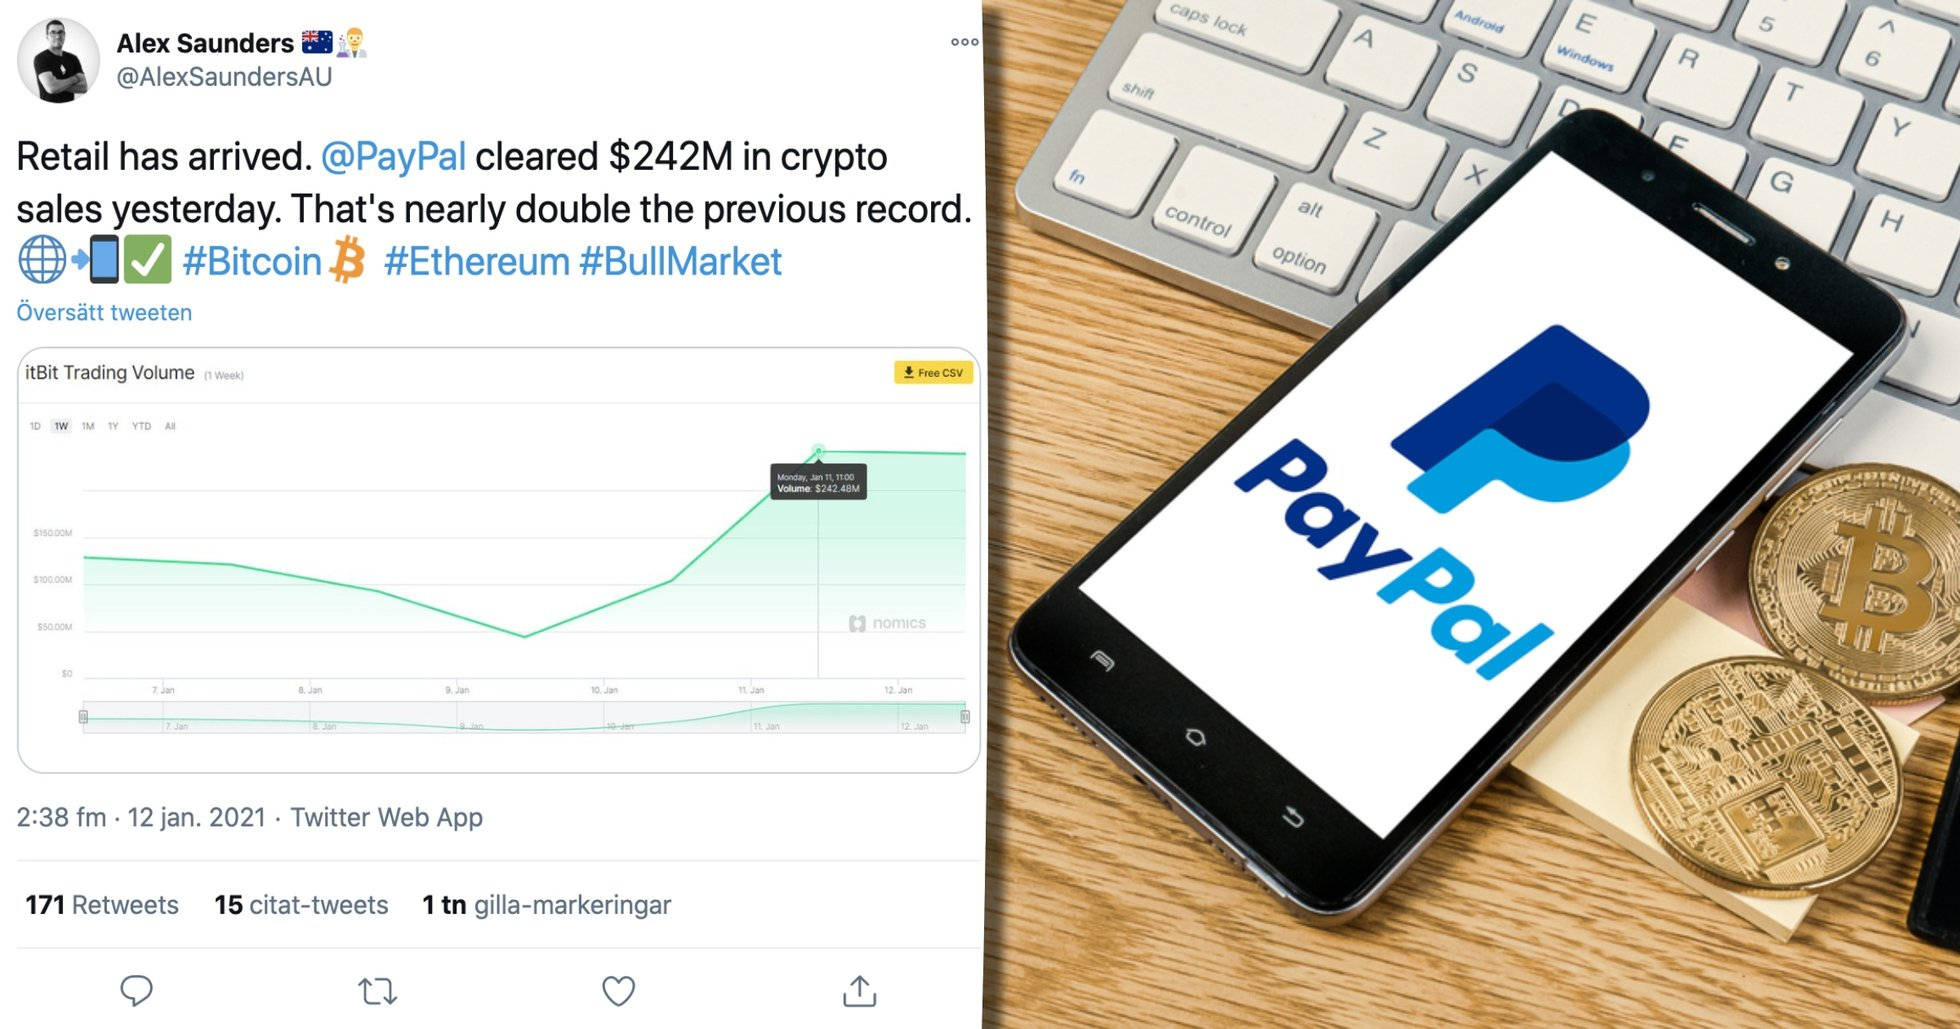 New volume record for crypto trading on Paypal - here's what it may mean